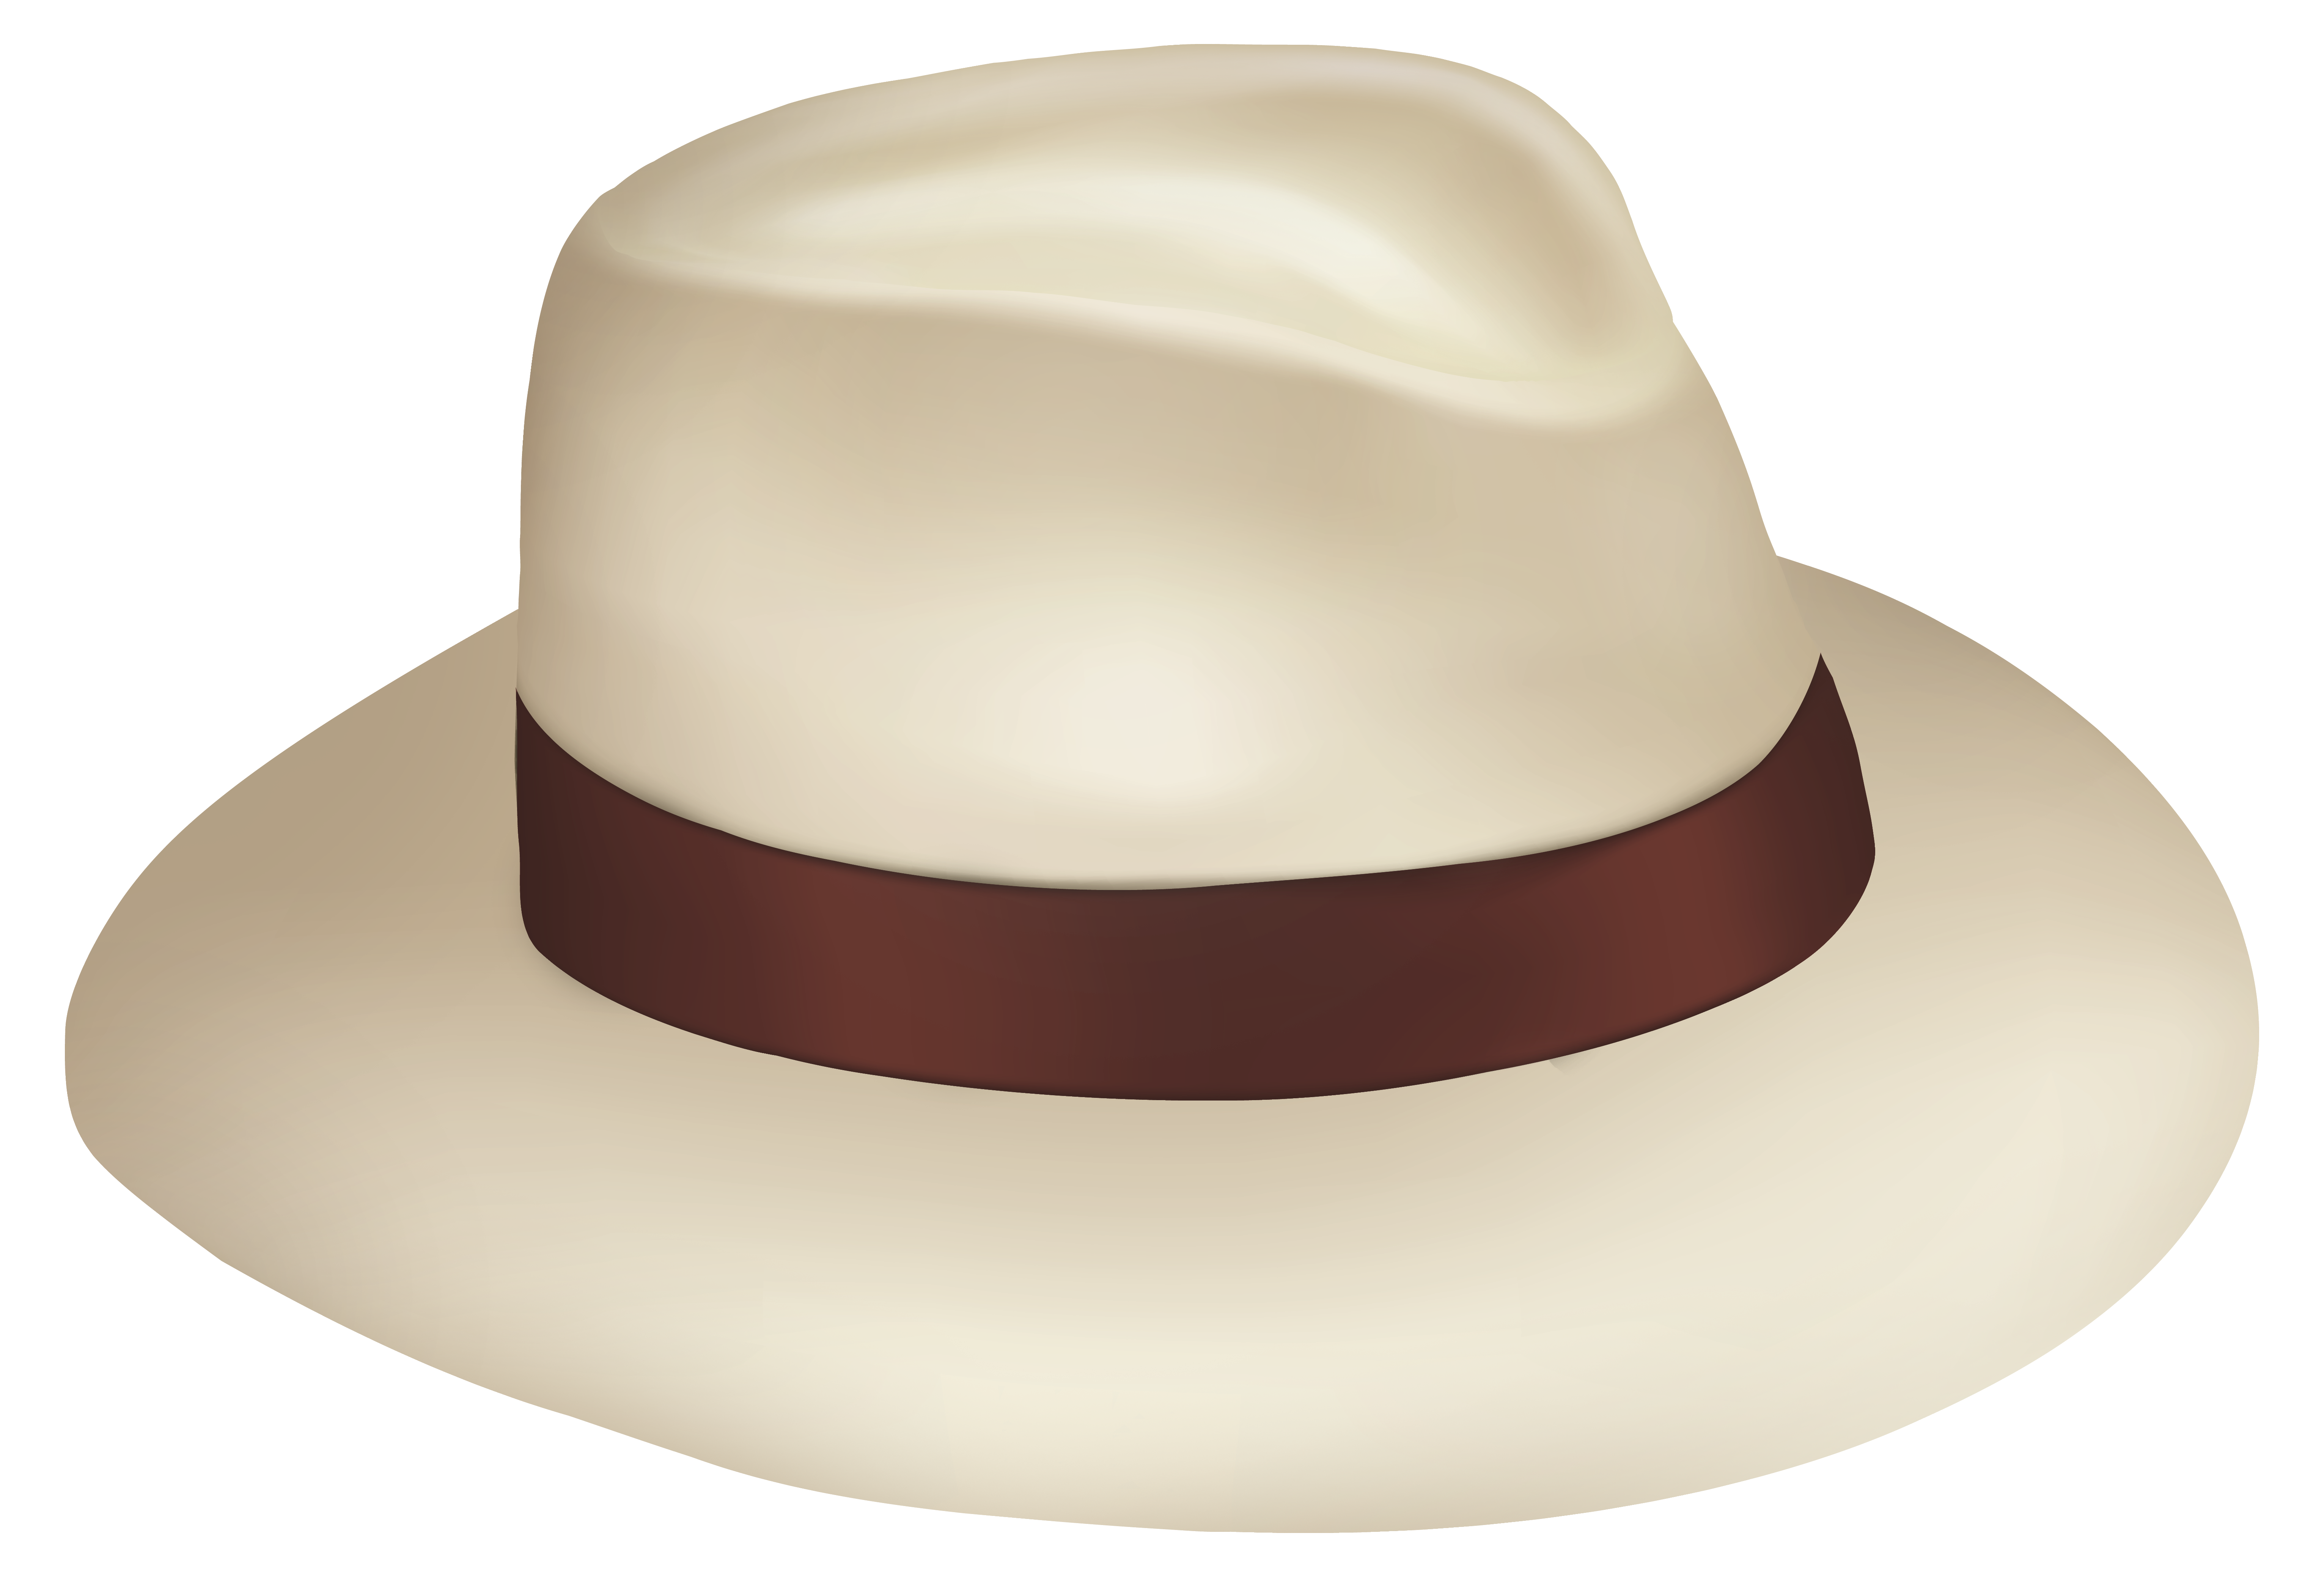 Panama Sun Hat With Brown Ribbon PNG Clipart.